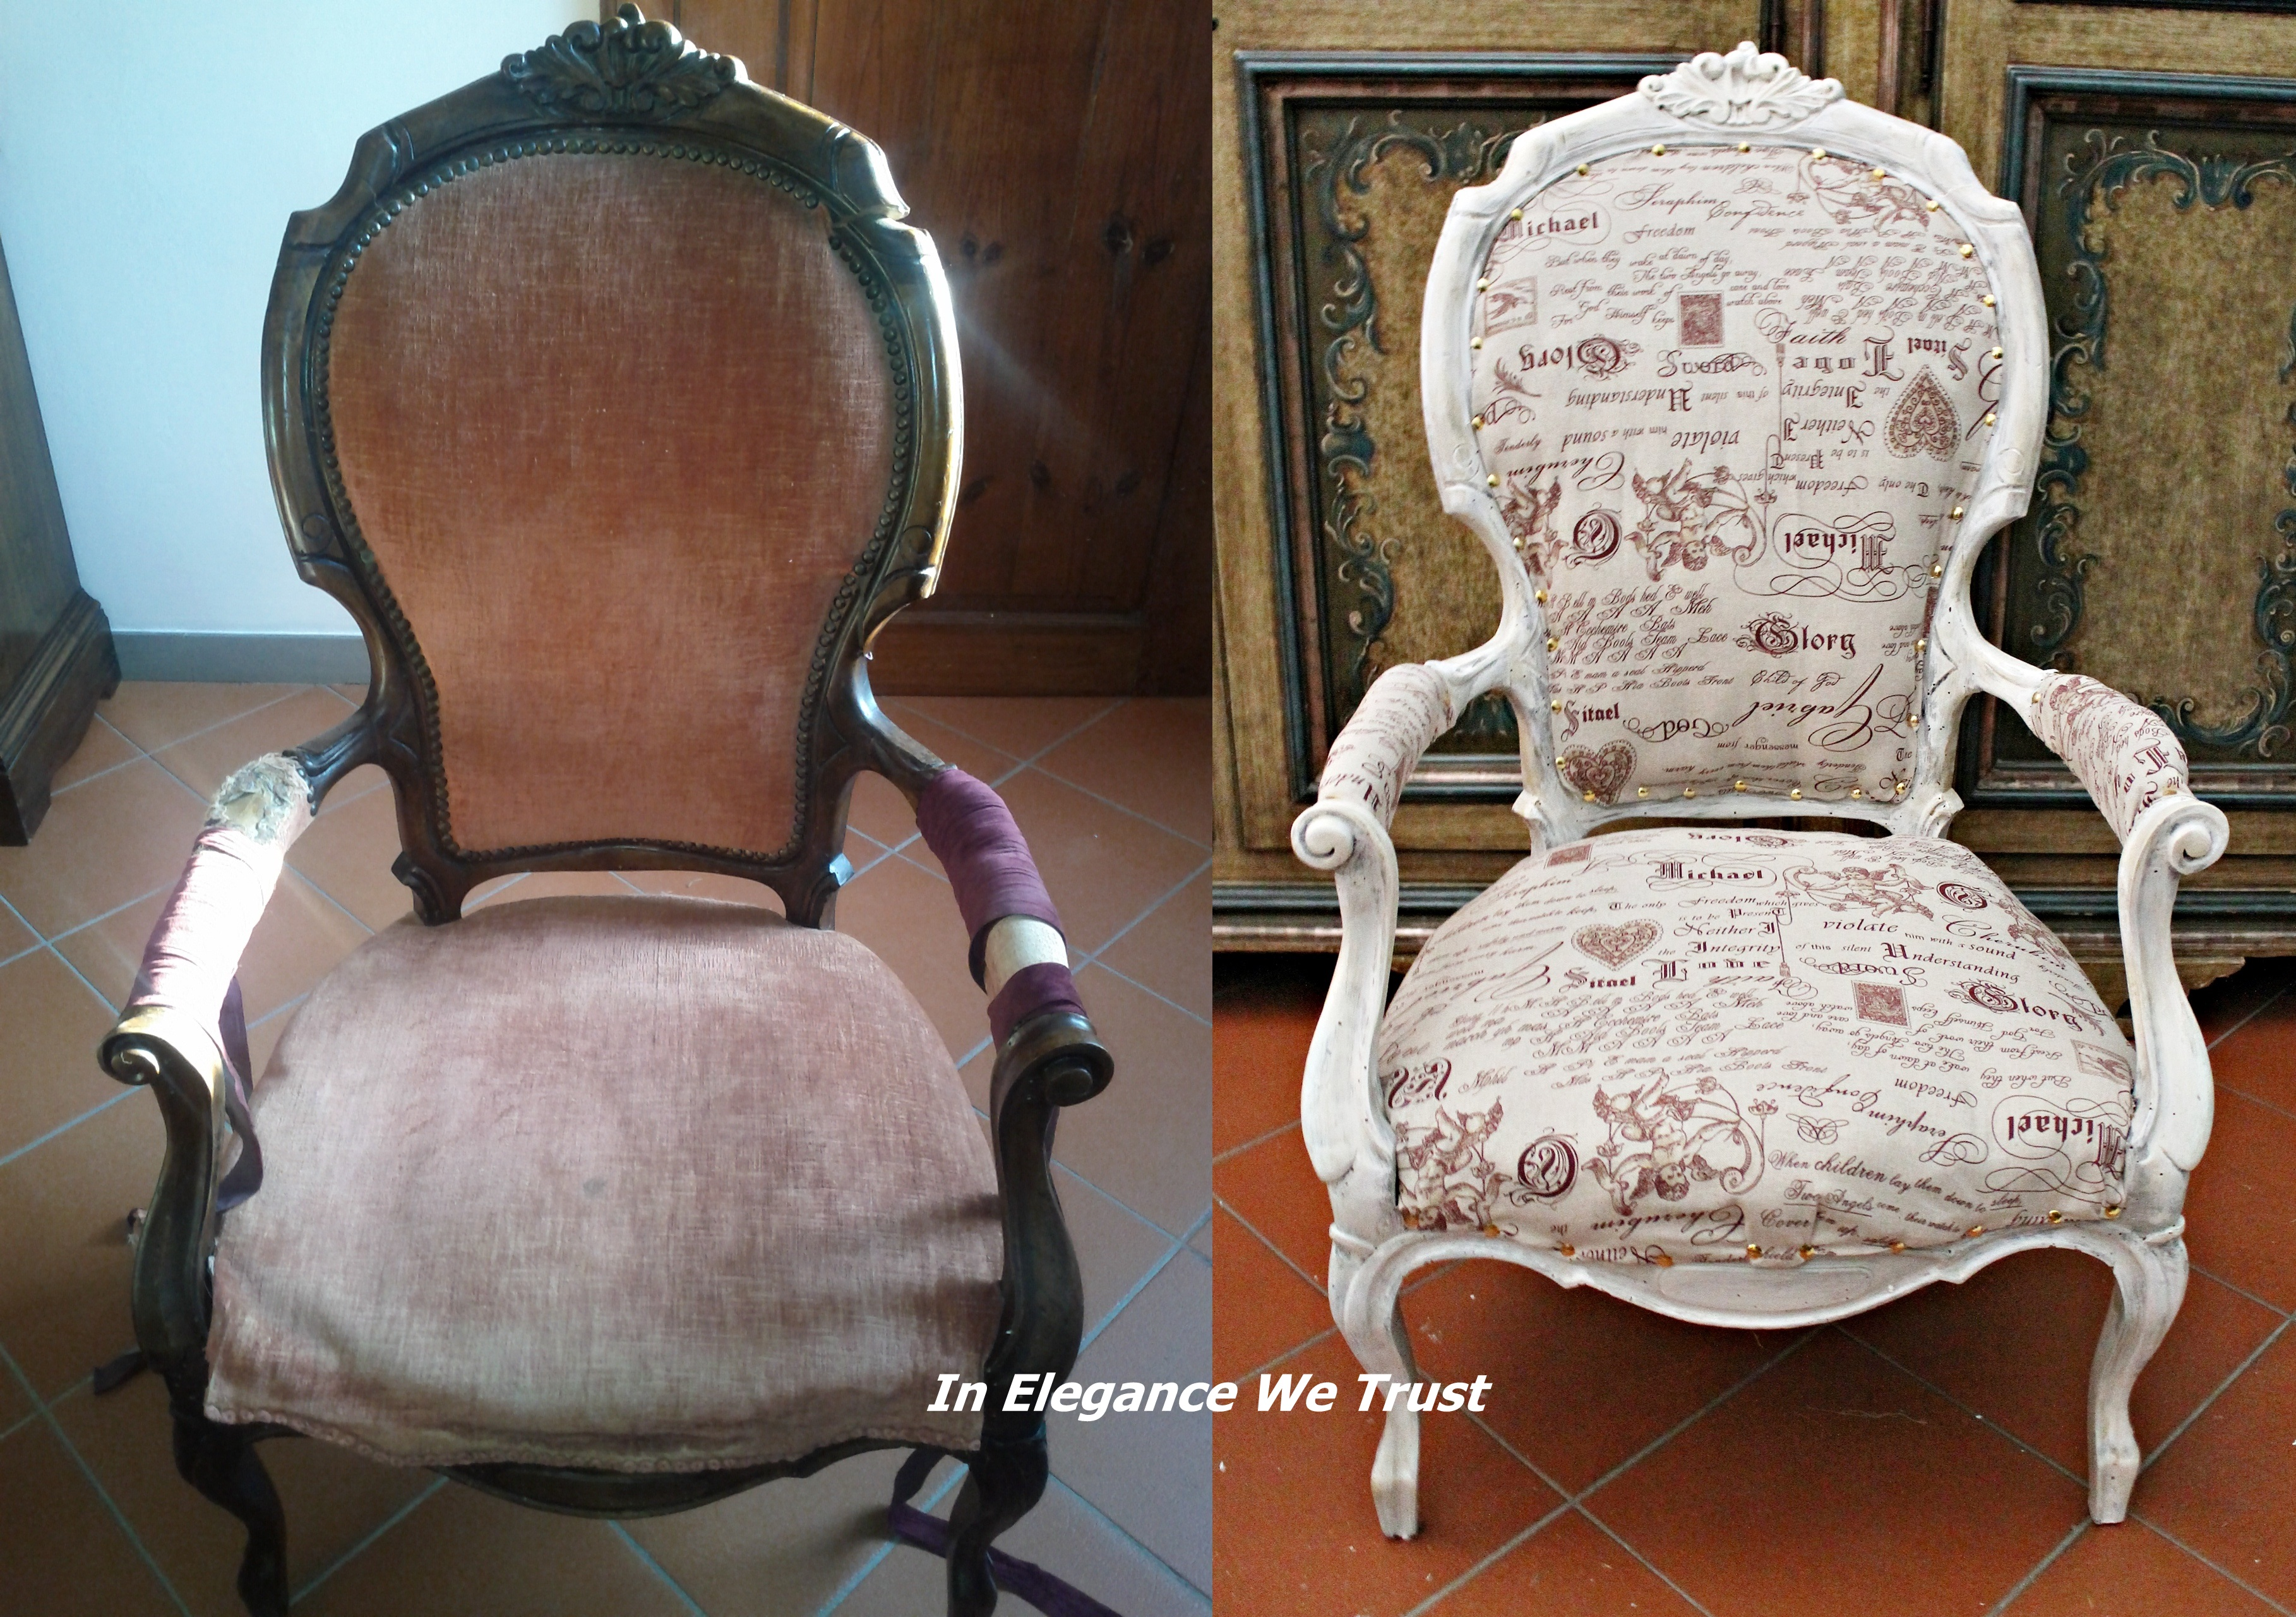 Recupero e shabby chic poltrona in elegance we trust for Poltrone shabby